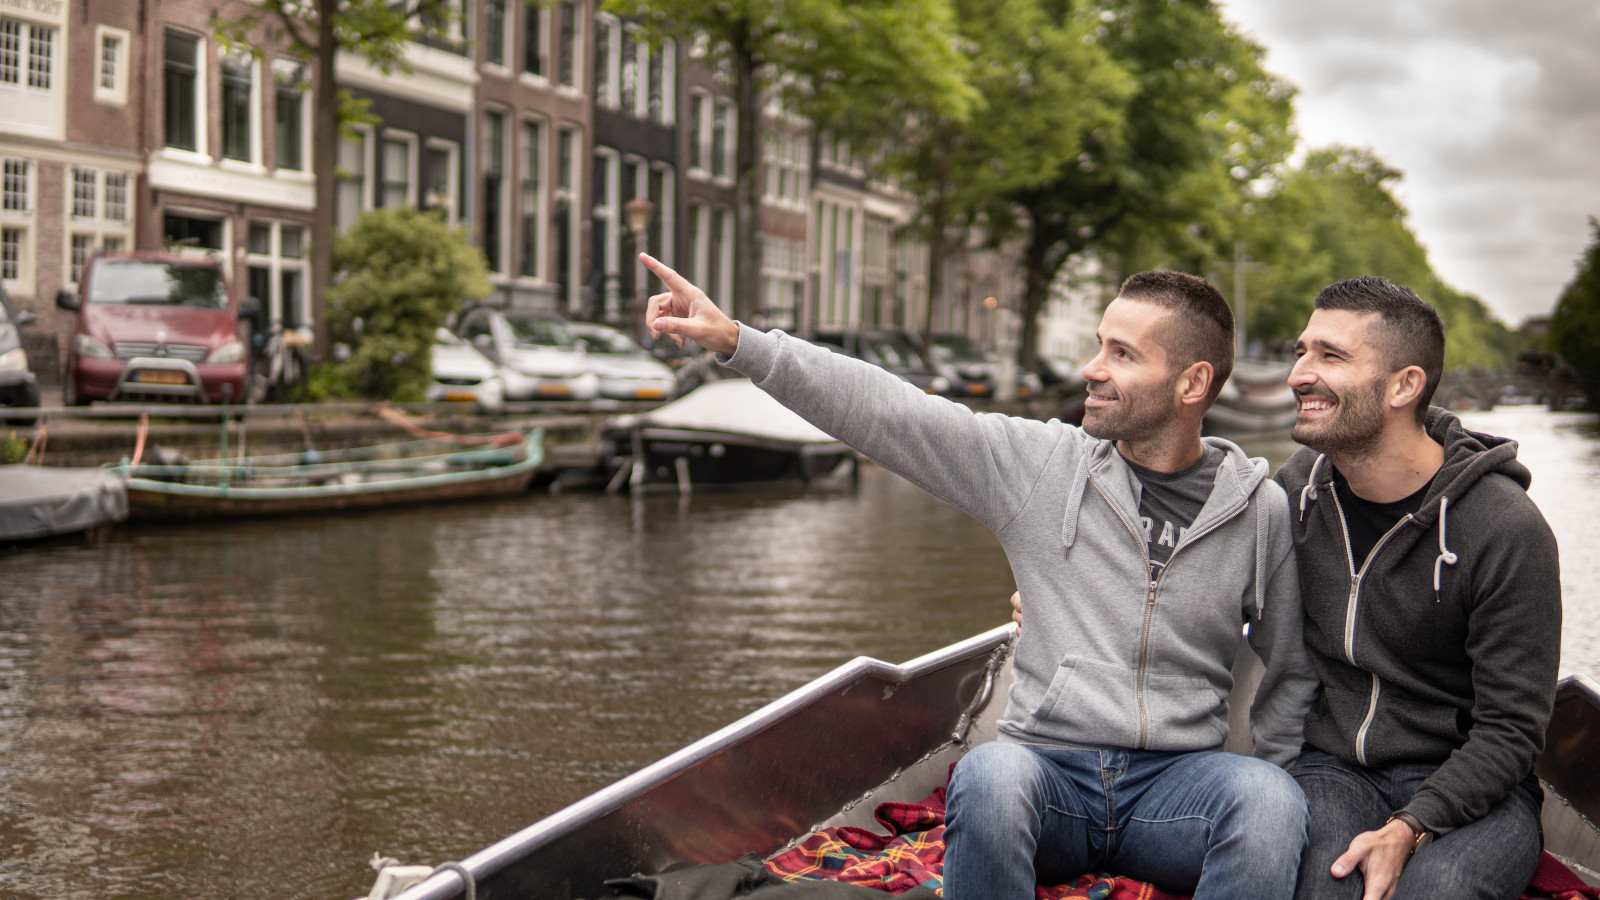 Nomadic Boys are Stefan and Sebastien gay couple, here they are together in Amsterdam